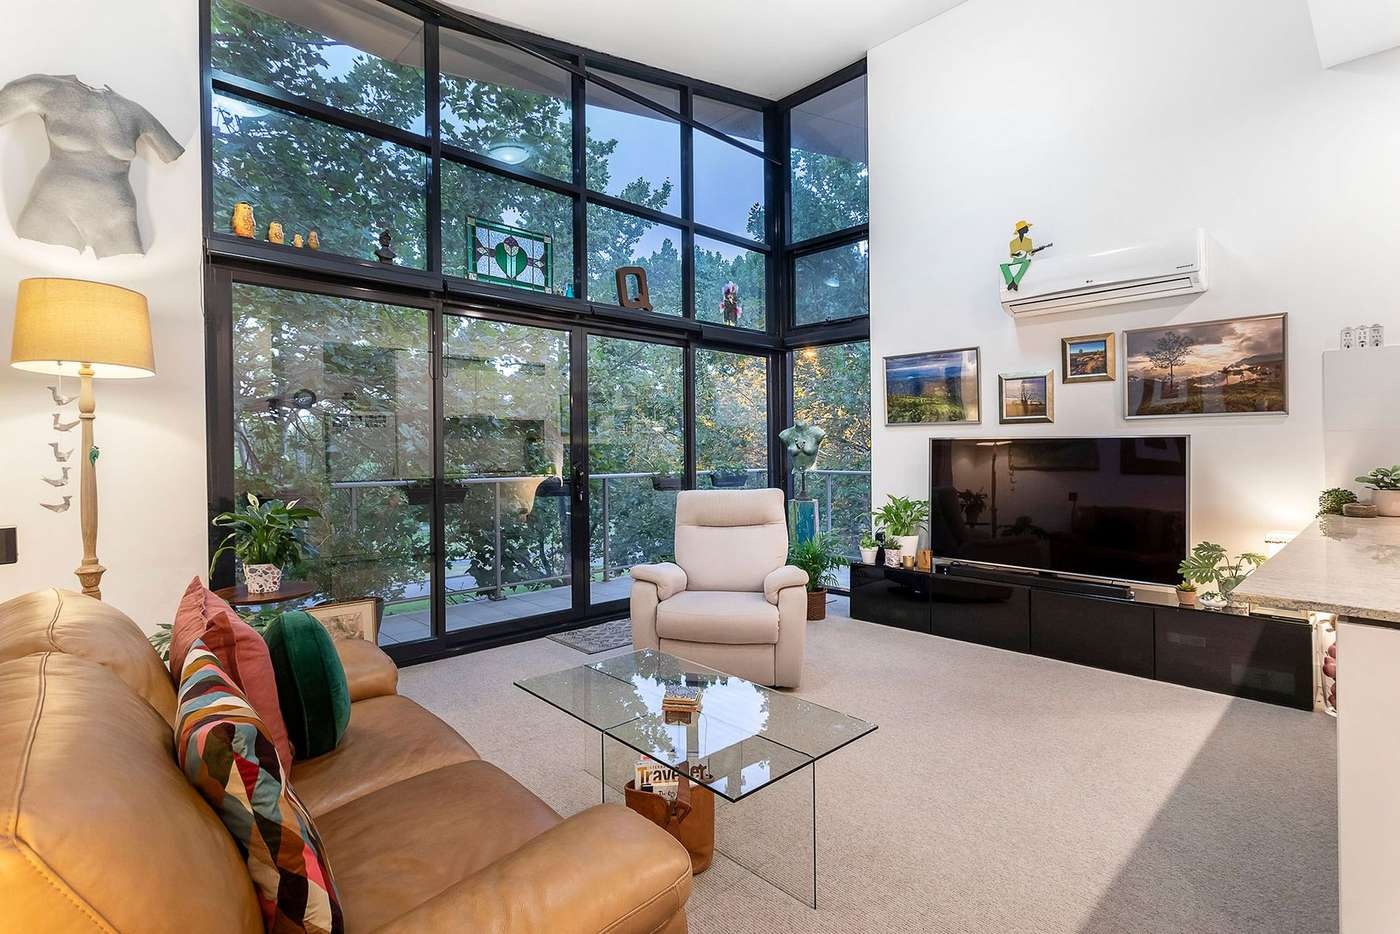 Main view of Homely apartment listing, 18/124 Mounts Bay Road, Perth WA 6000